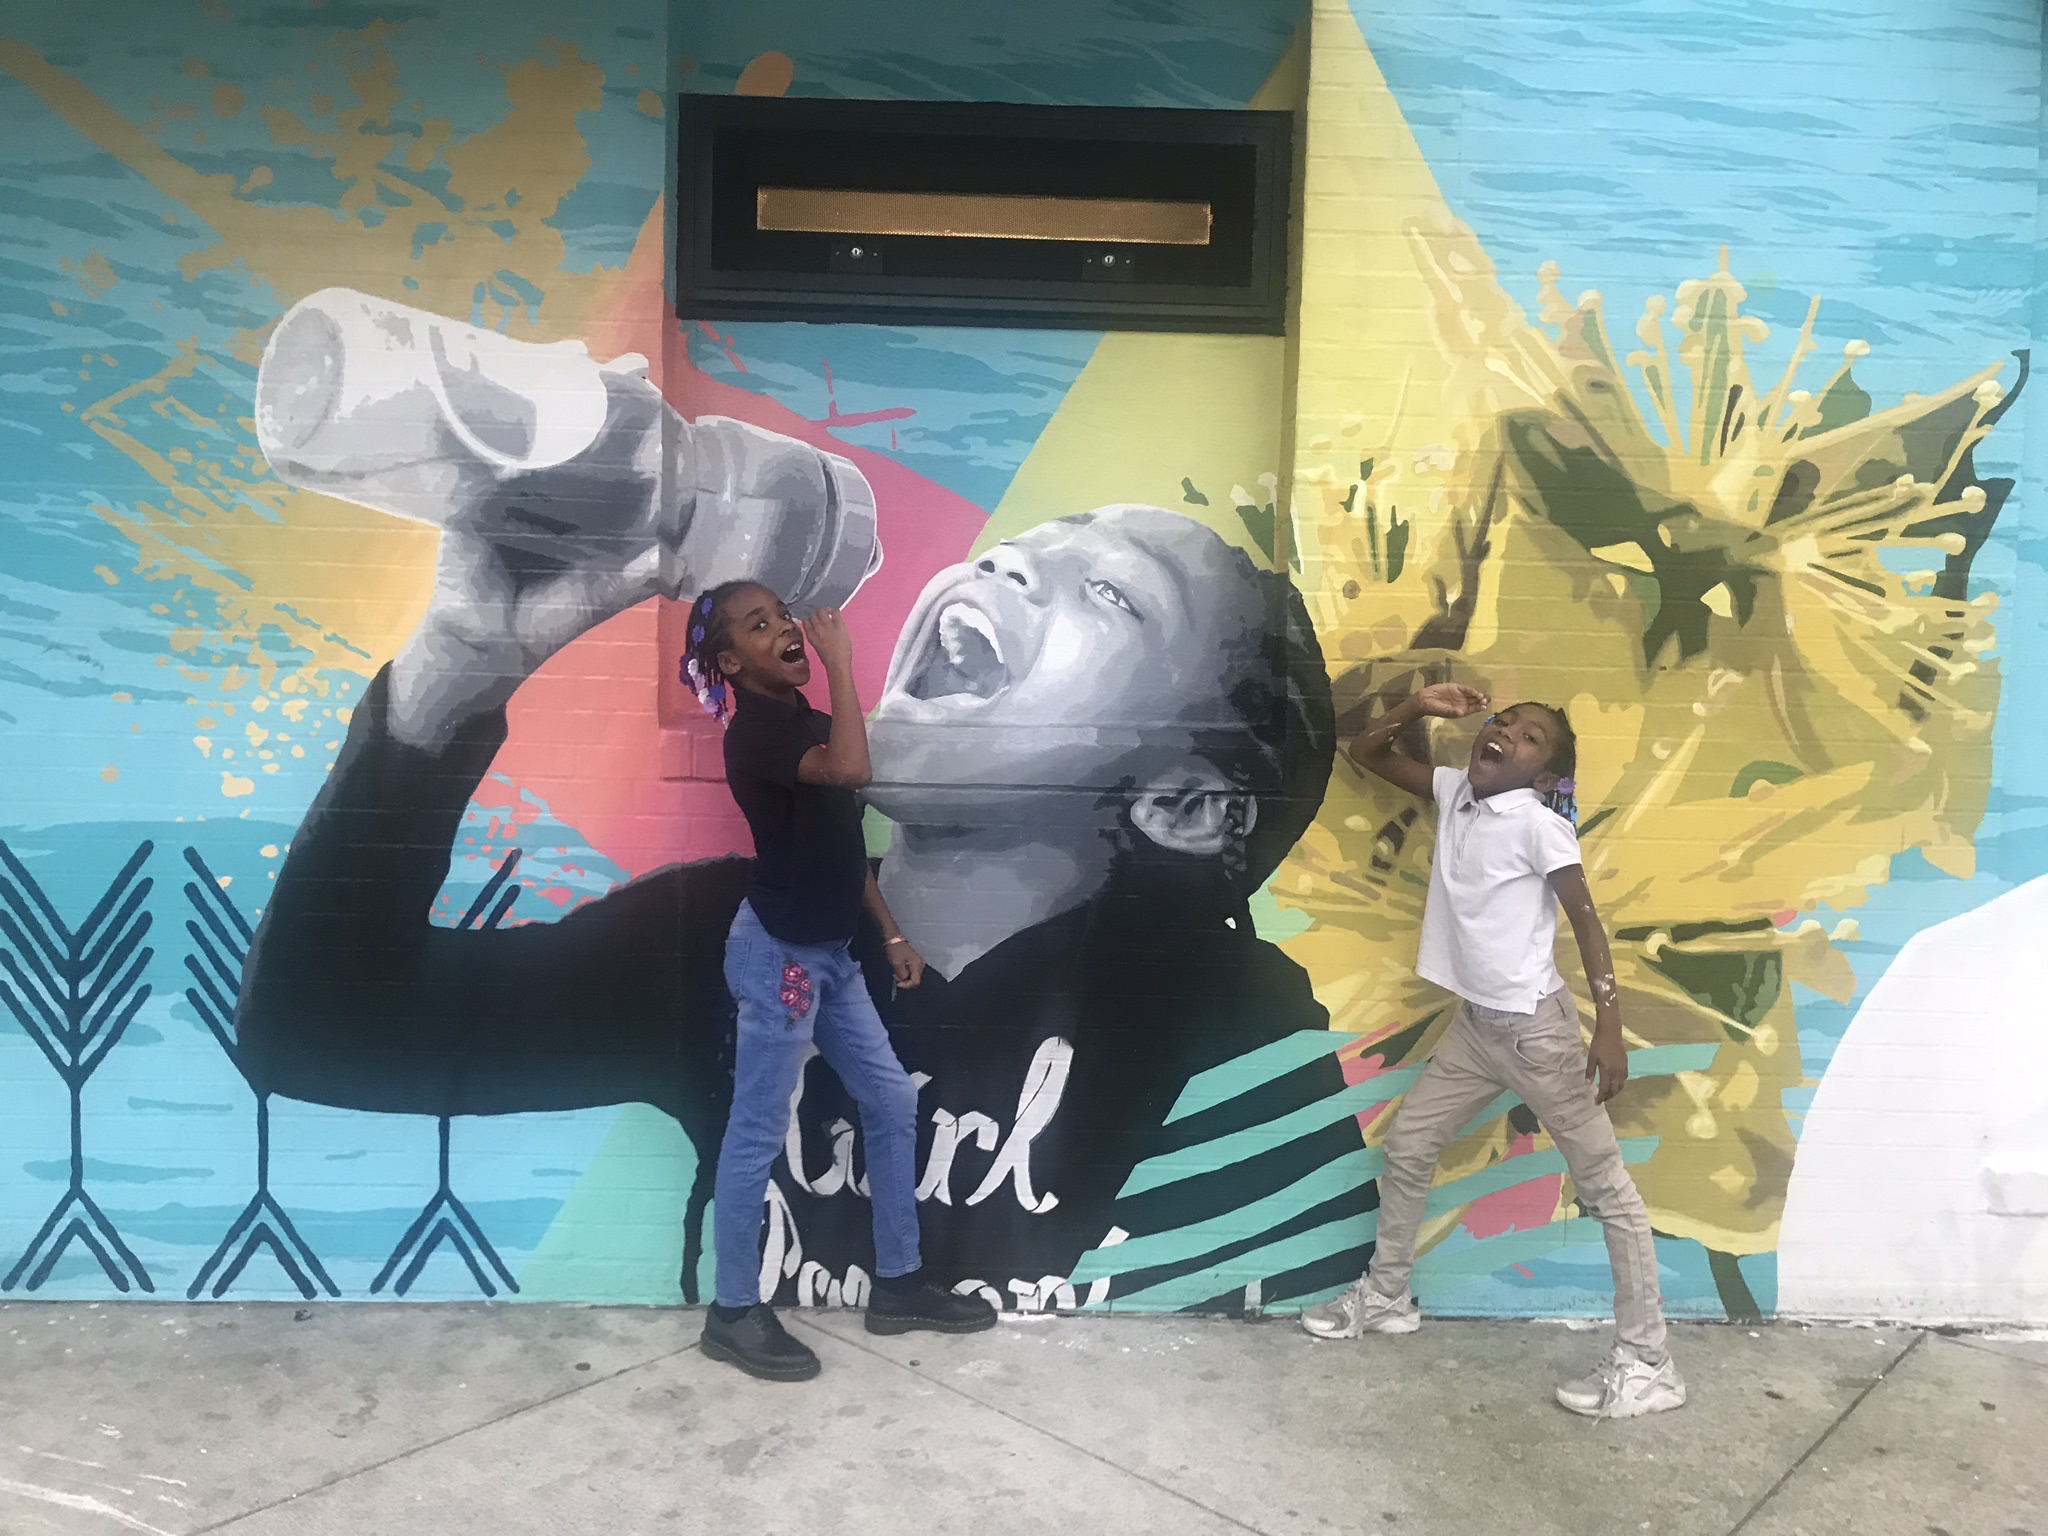 The mural show a young girl with dark skin and braids drinking from a reusable water bottle, painted in shades of grey with colorful abstract designs on a light blue background that looks like water. The model and another young girl stand in front of the wall mimicing her pose